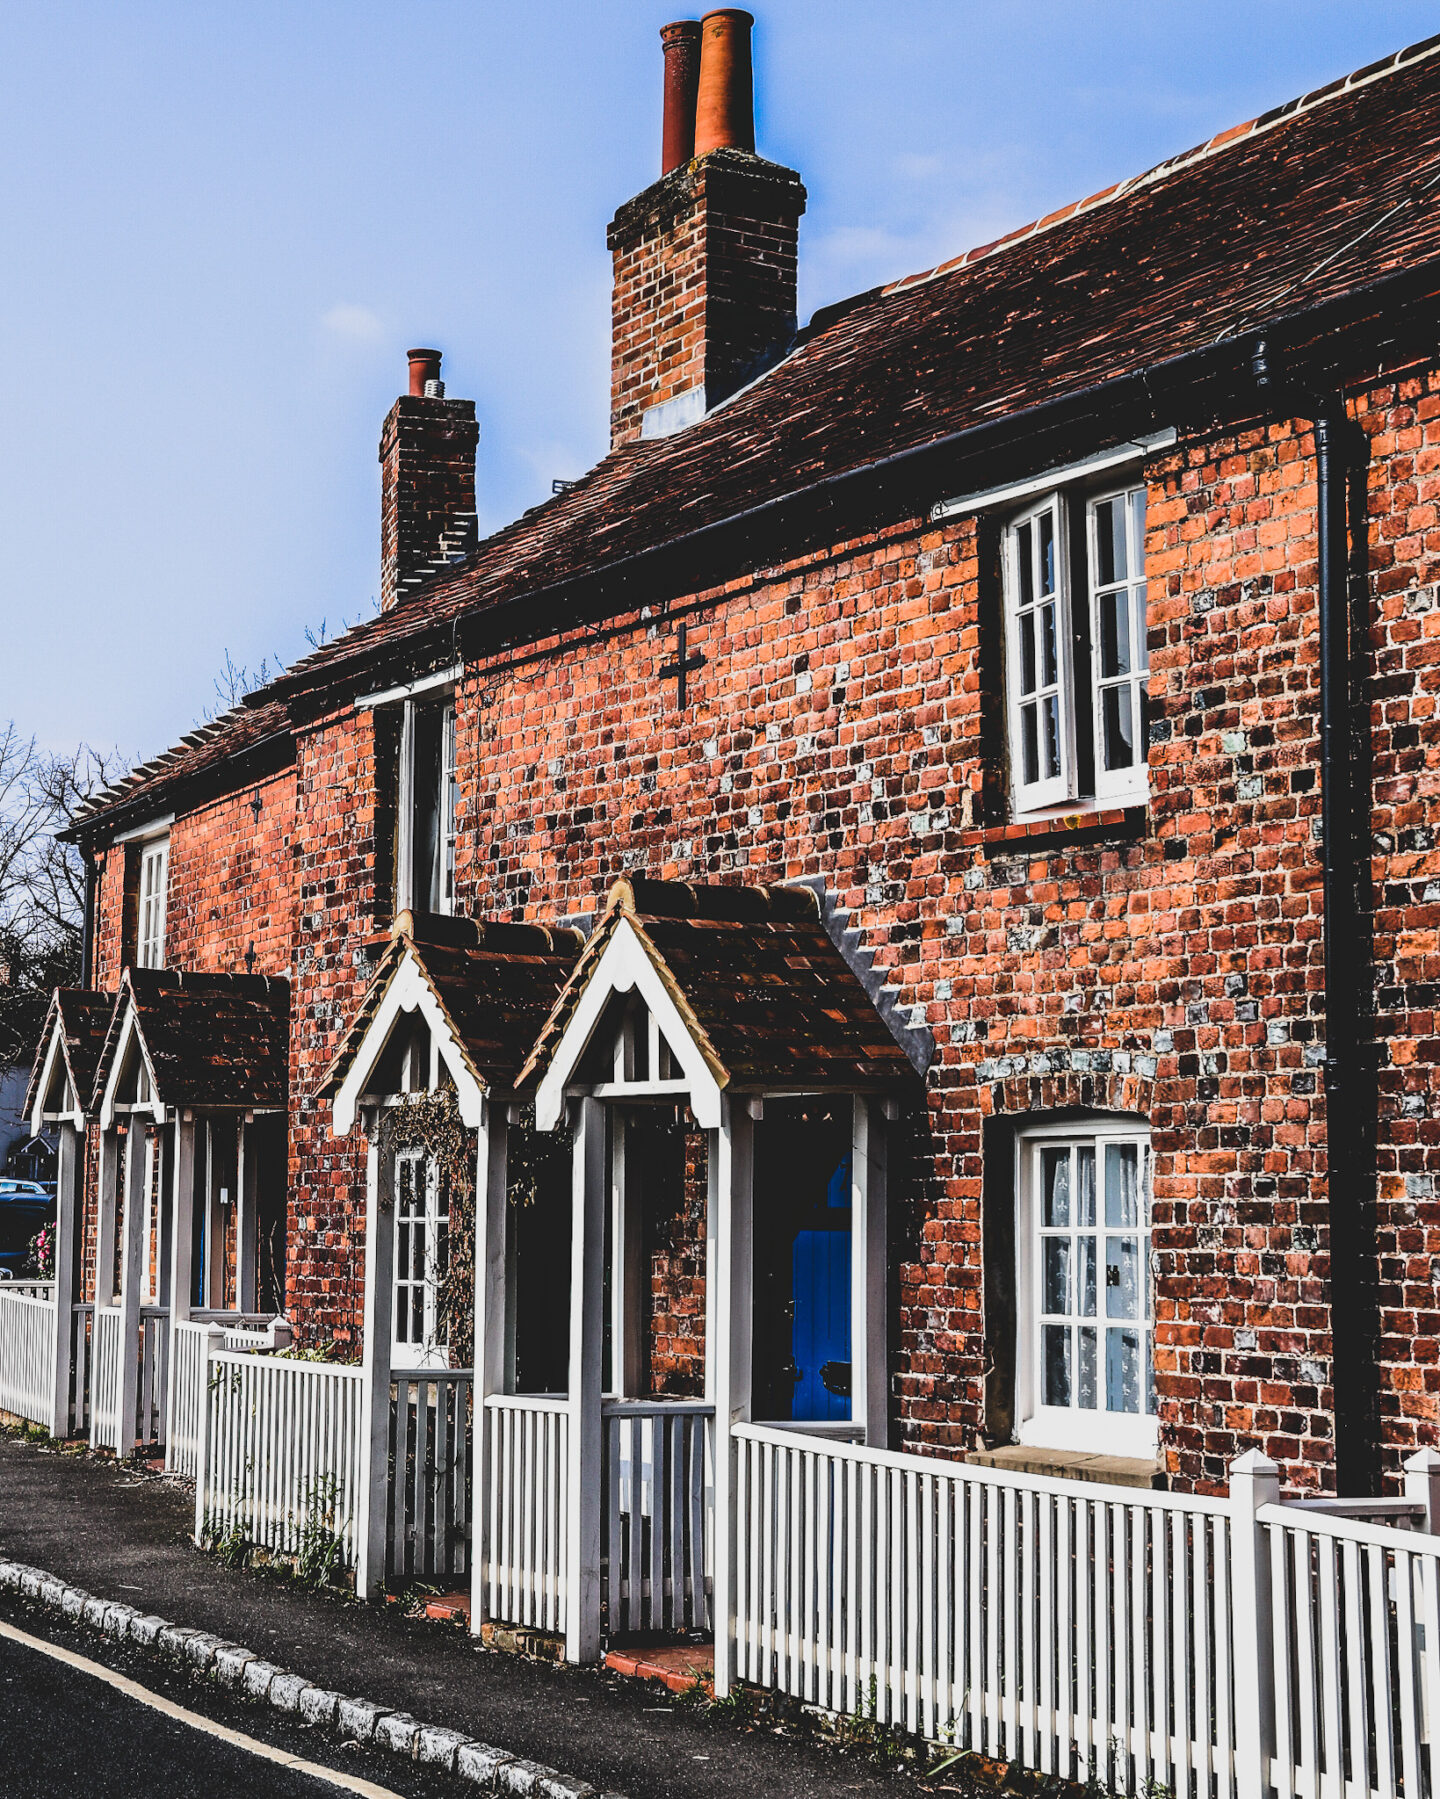 Pretty cottages in the old town of Beaconsfield.